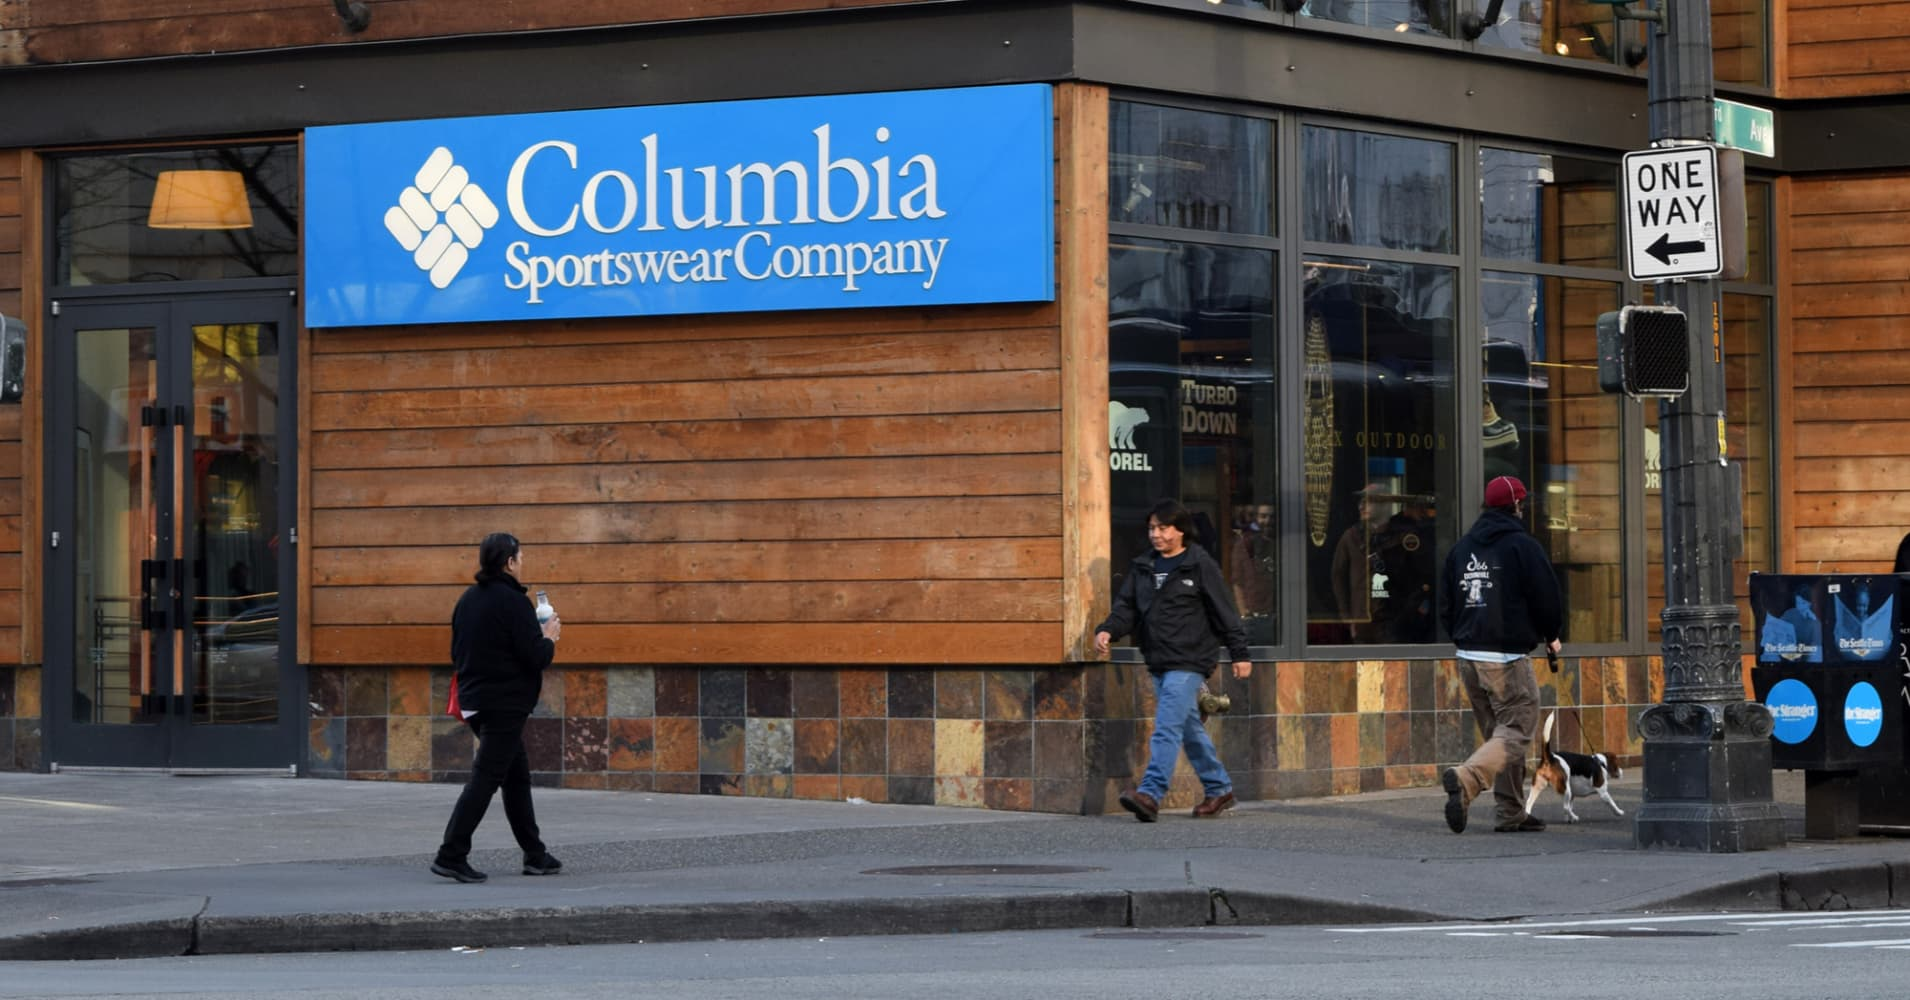 Columbia clothes store